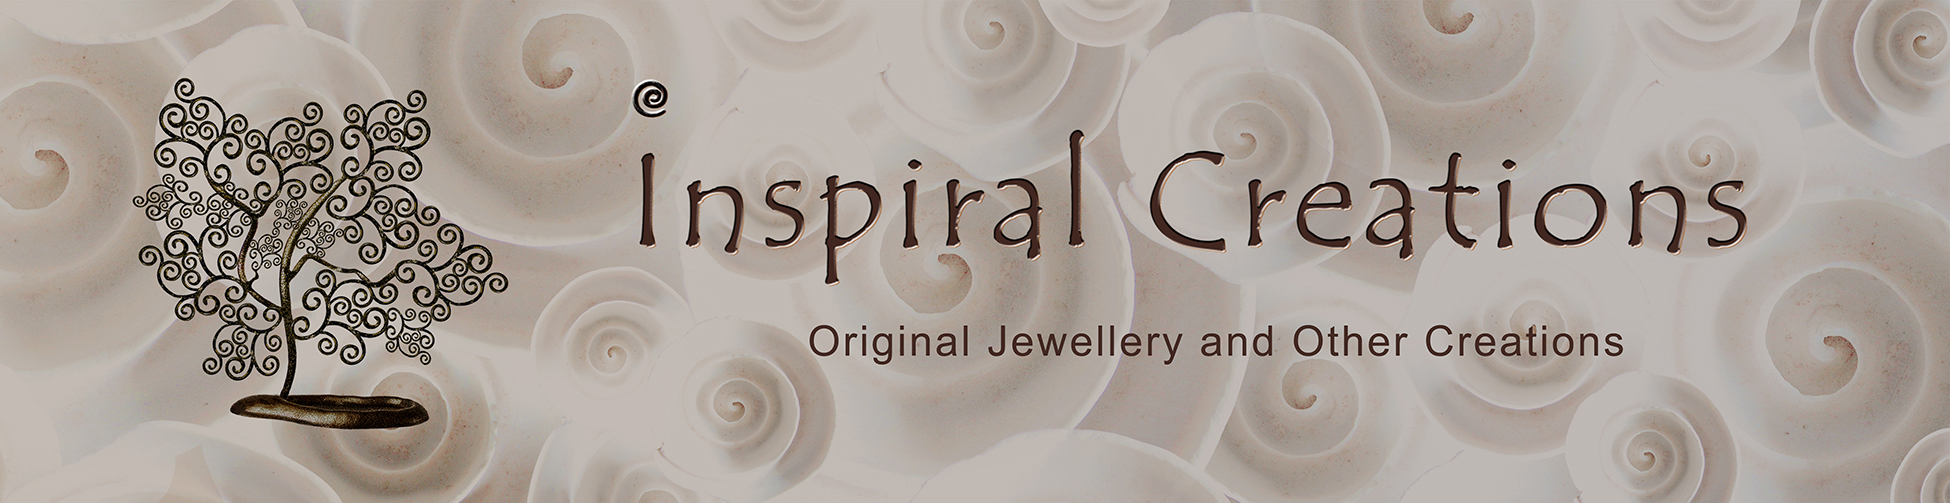 Inspiral Creations